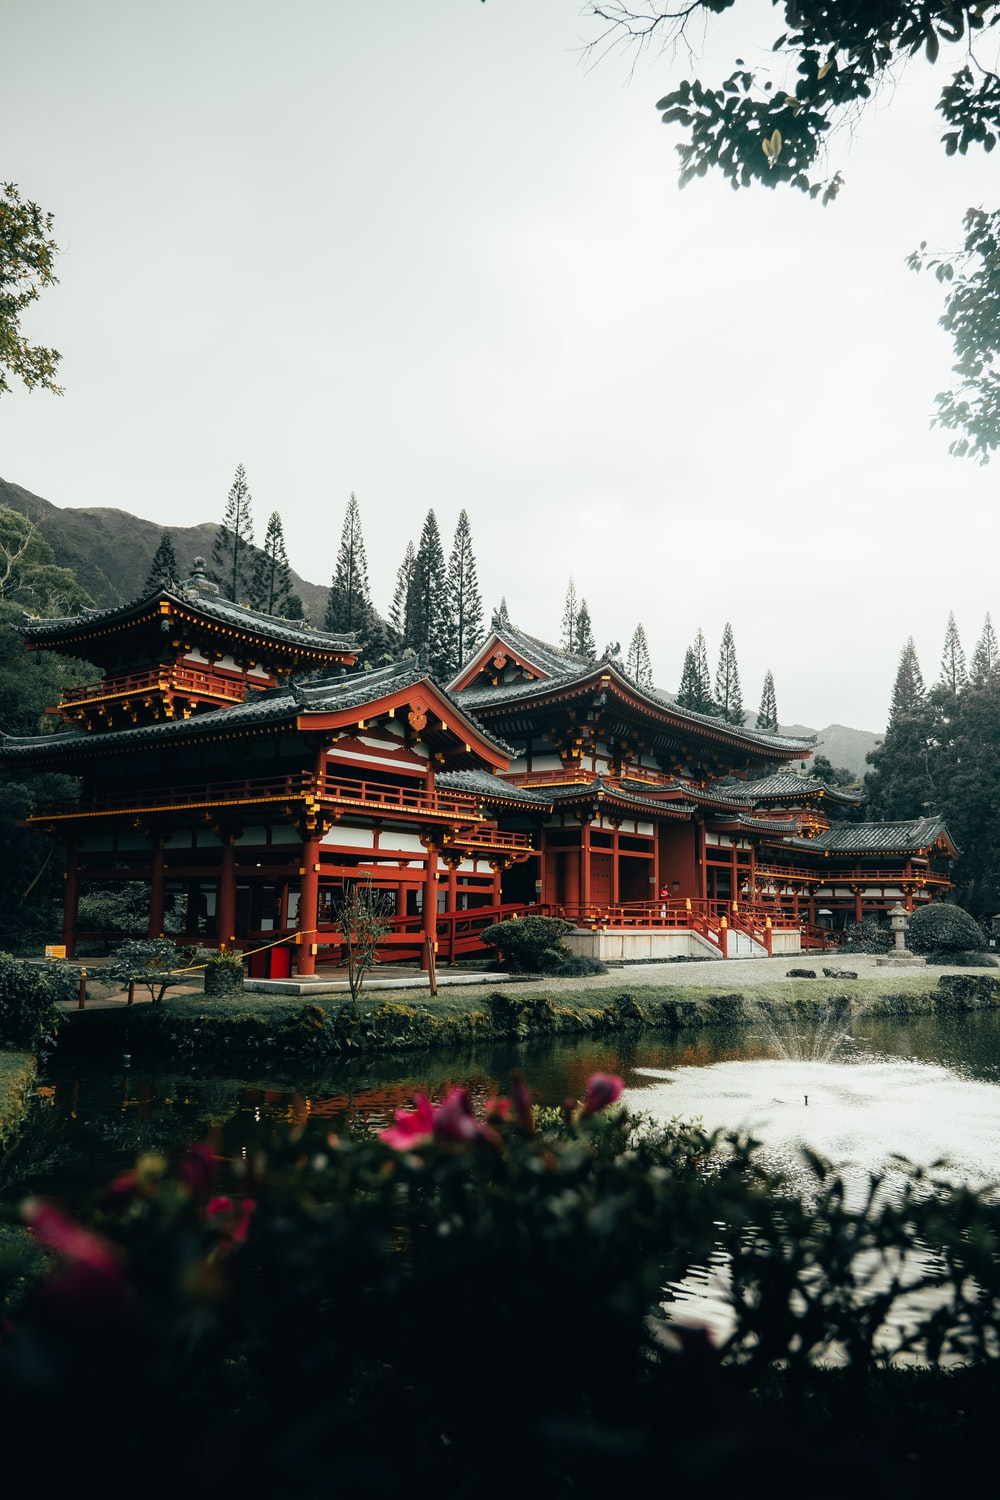 red and brown temple surrounded by trees during daytime